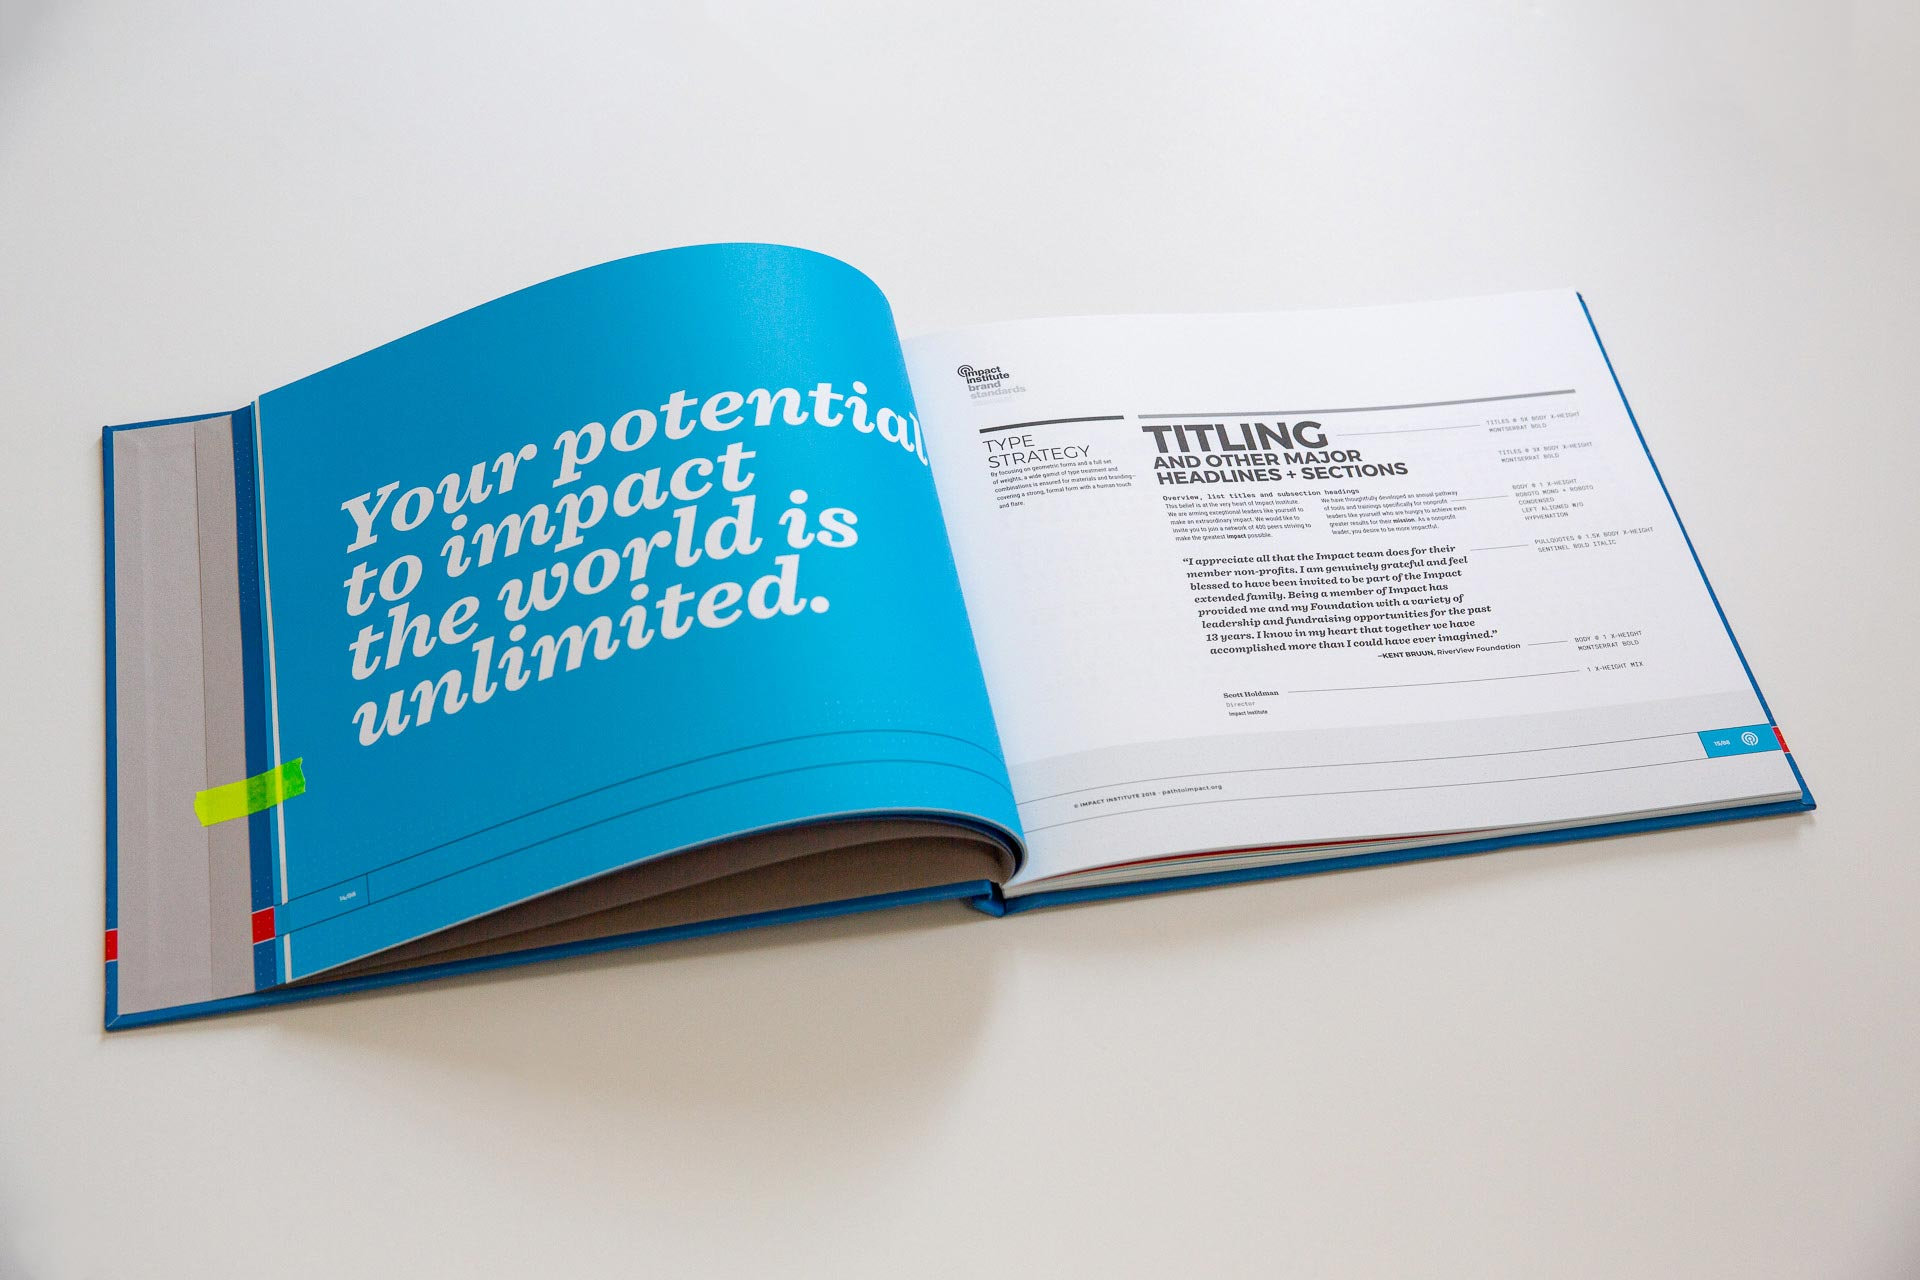 Impact Institute brand guideline manual open to spread with large white quote on the left page and typography on the right